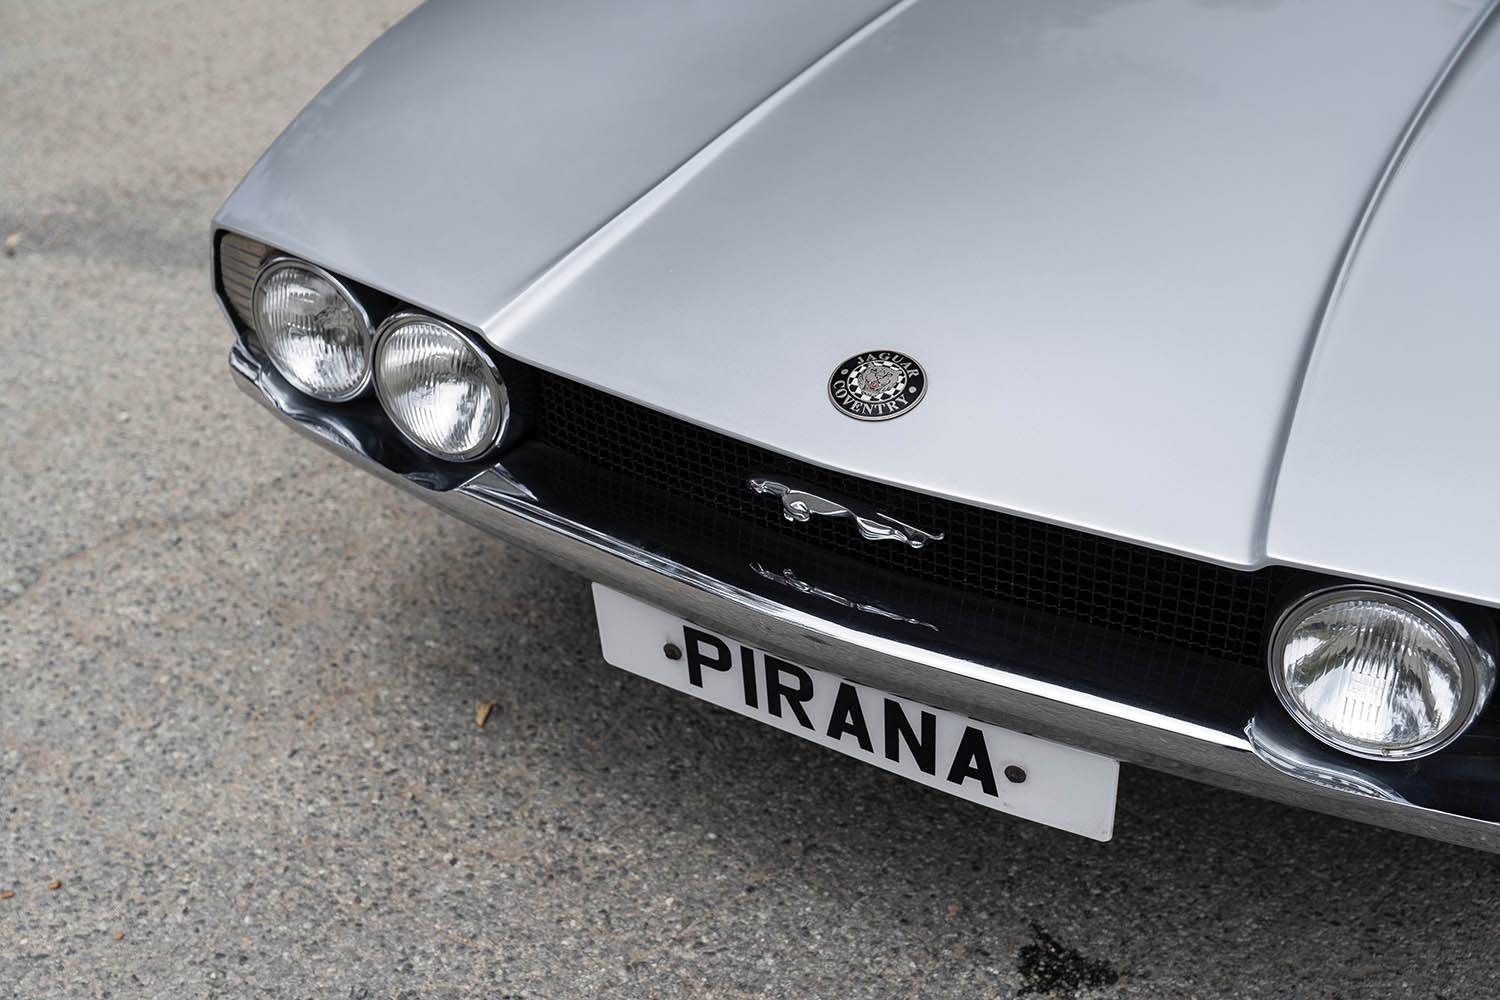 1967-Jaguar-Pirana-by-Bertone_22.jpg